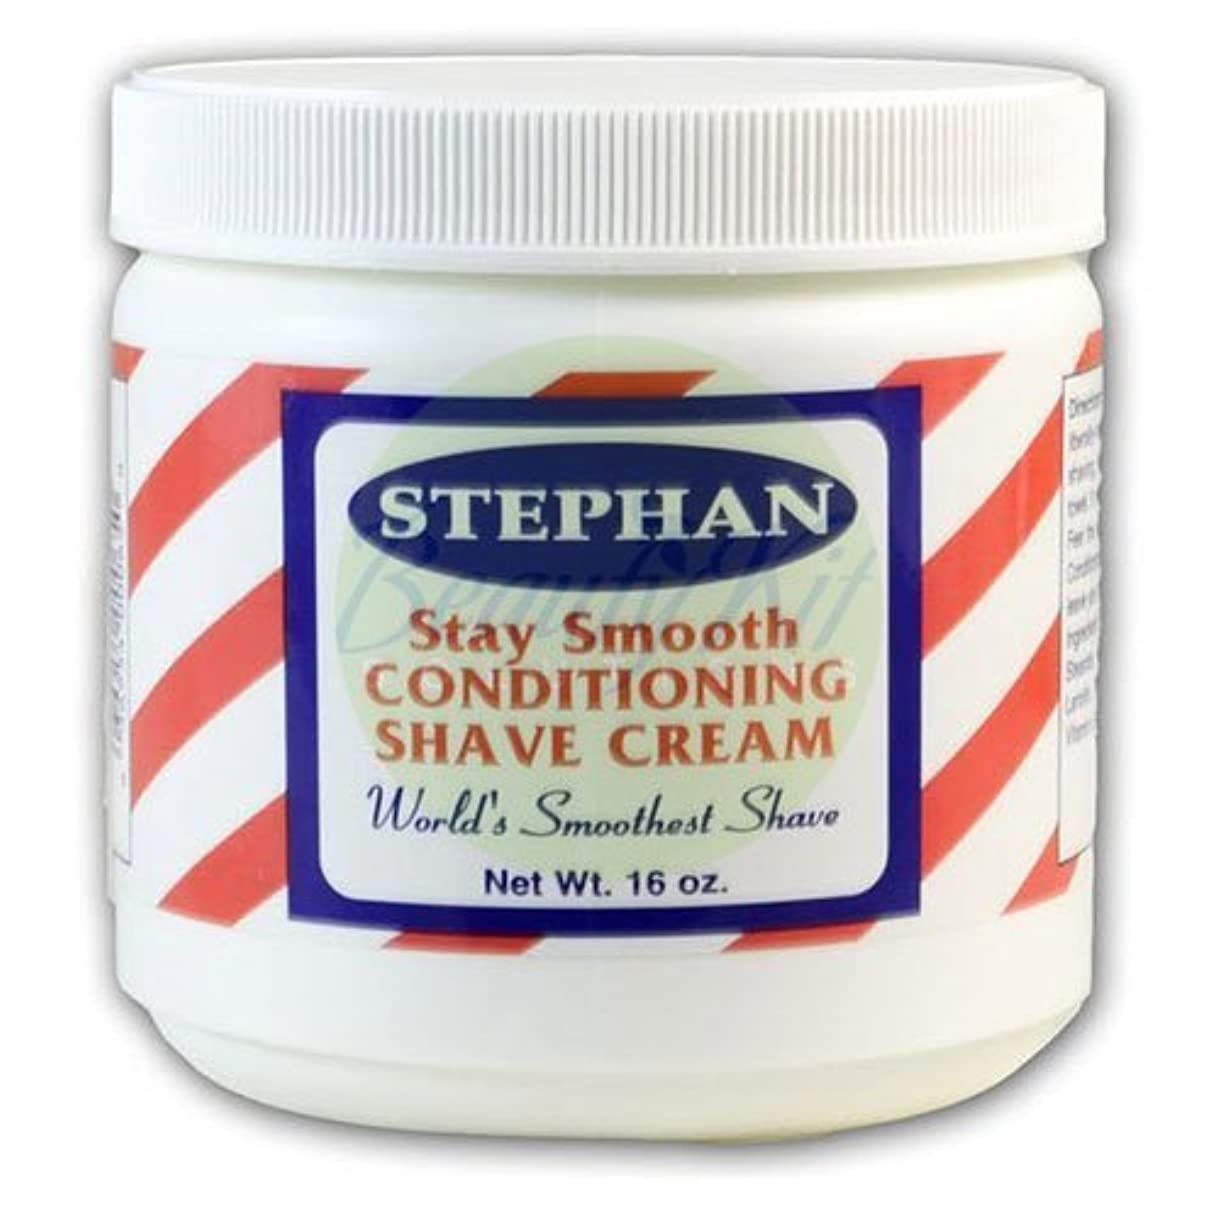 パウダー量で不要Stephans Stay Smooth Conditioning Shave Cream [16 oz.] [並行輸入品]